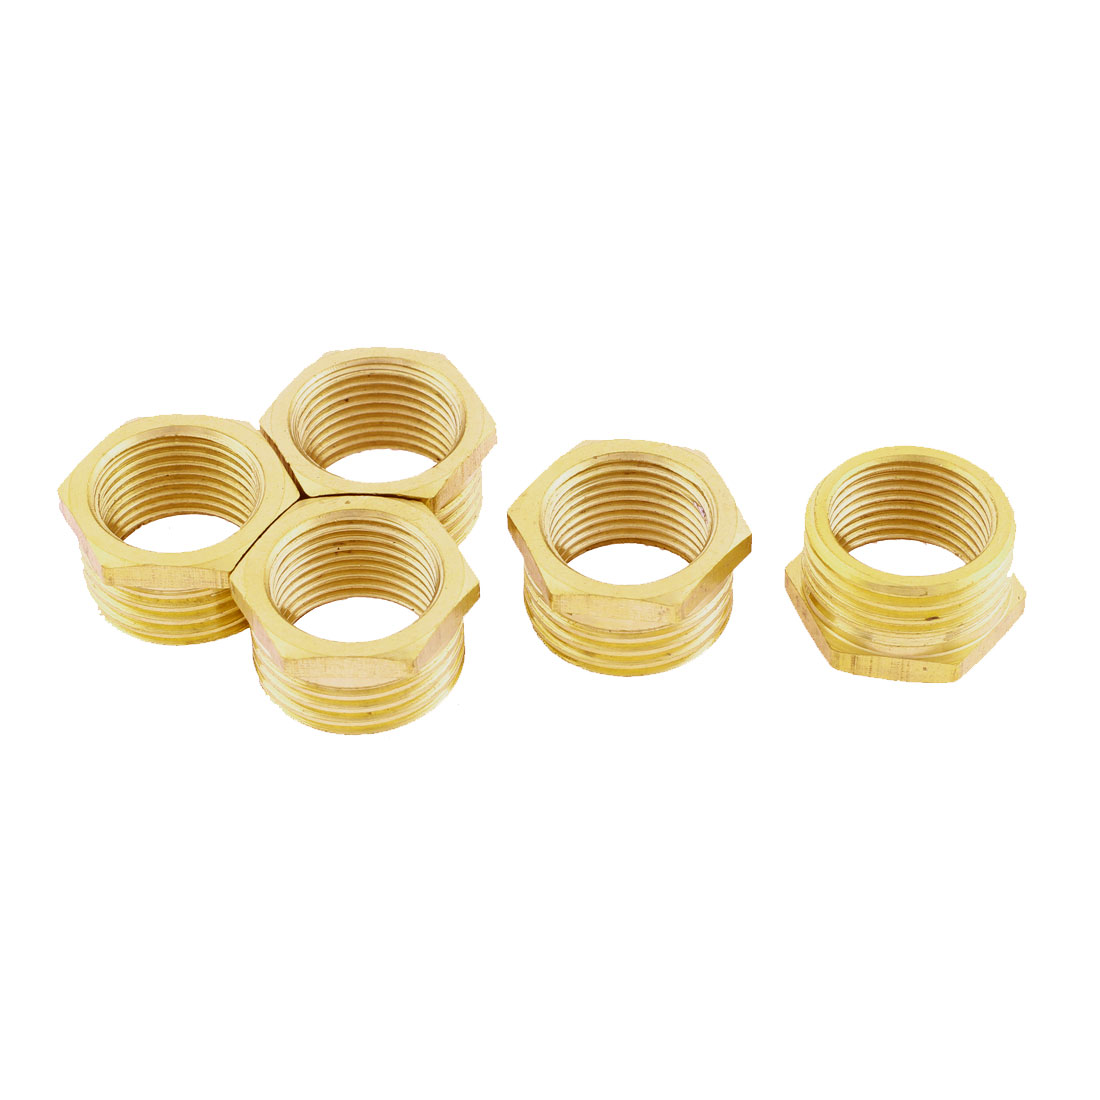 1/2BSP x 3/8BSP M/F Thread Hex Head Brass Bushing Piping Fitting Connector Adapter 5pcs